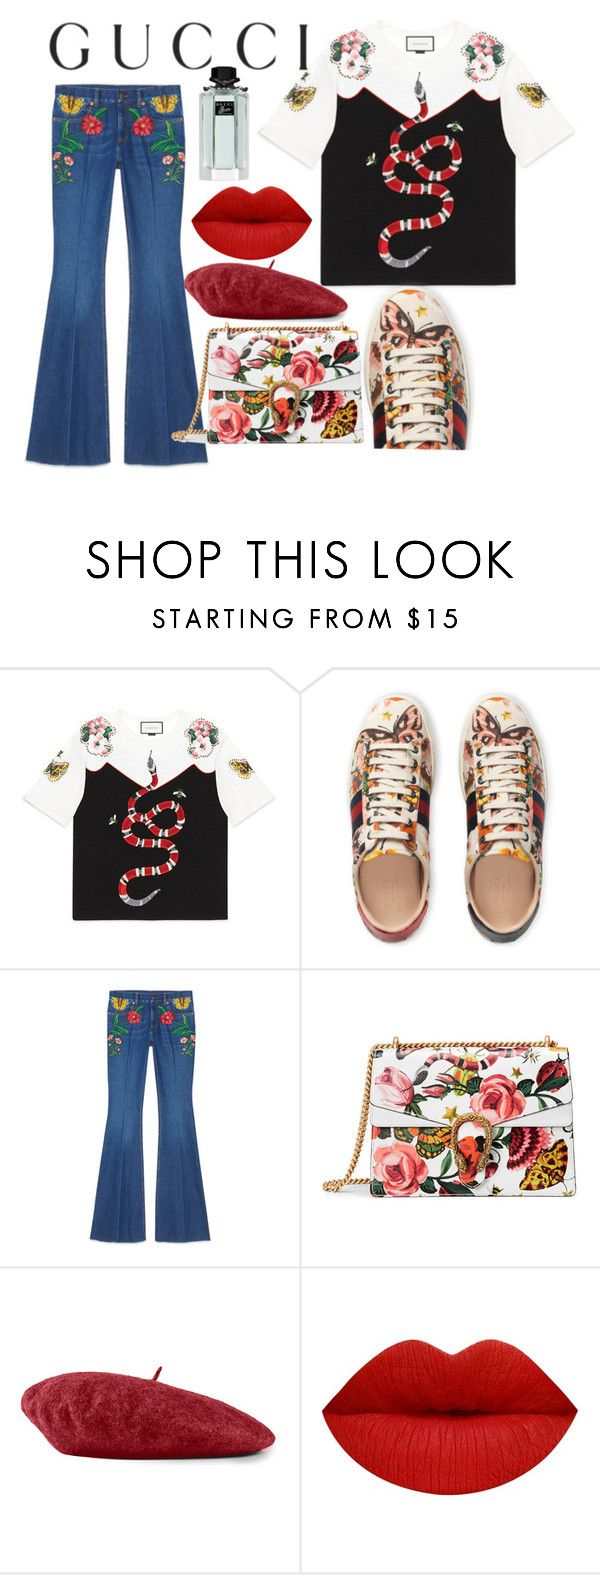 """Presenting the Gucci Garden Exclusive Collection: Contest Entry"" by emisosamansilla ❤ liked on Polyvore featuring Gucci and gucci"